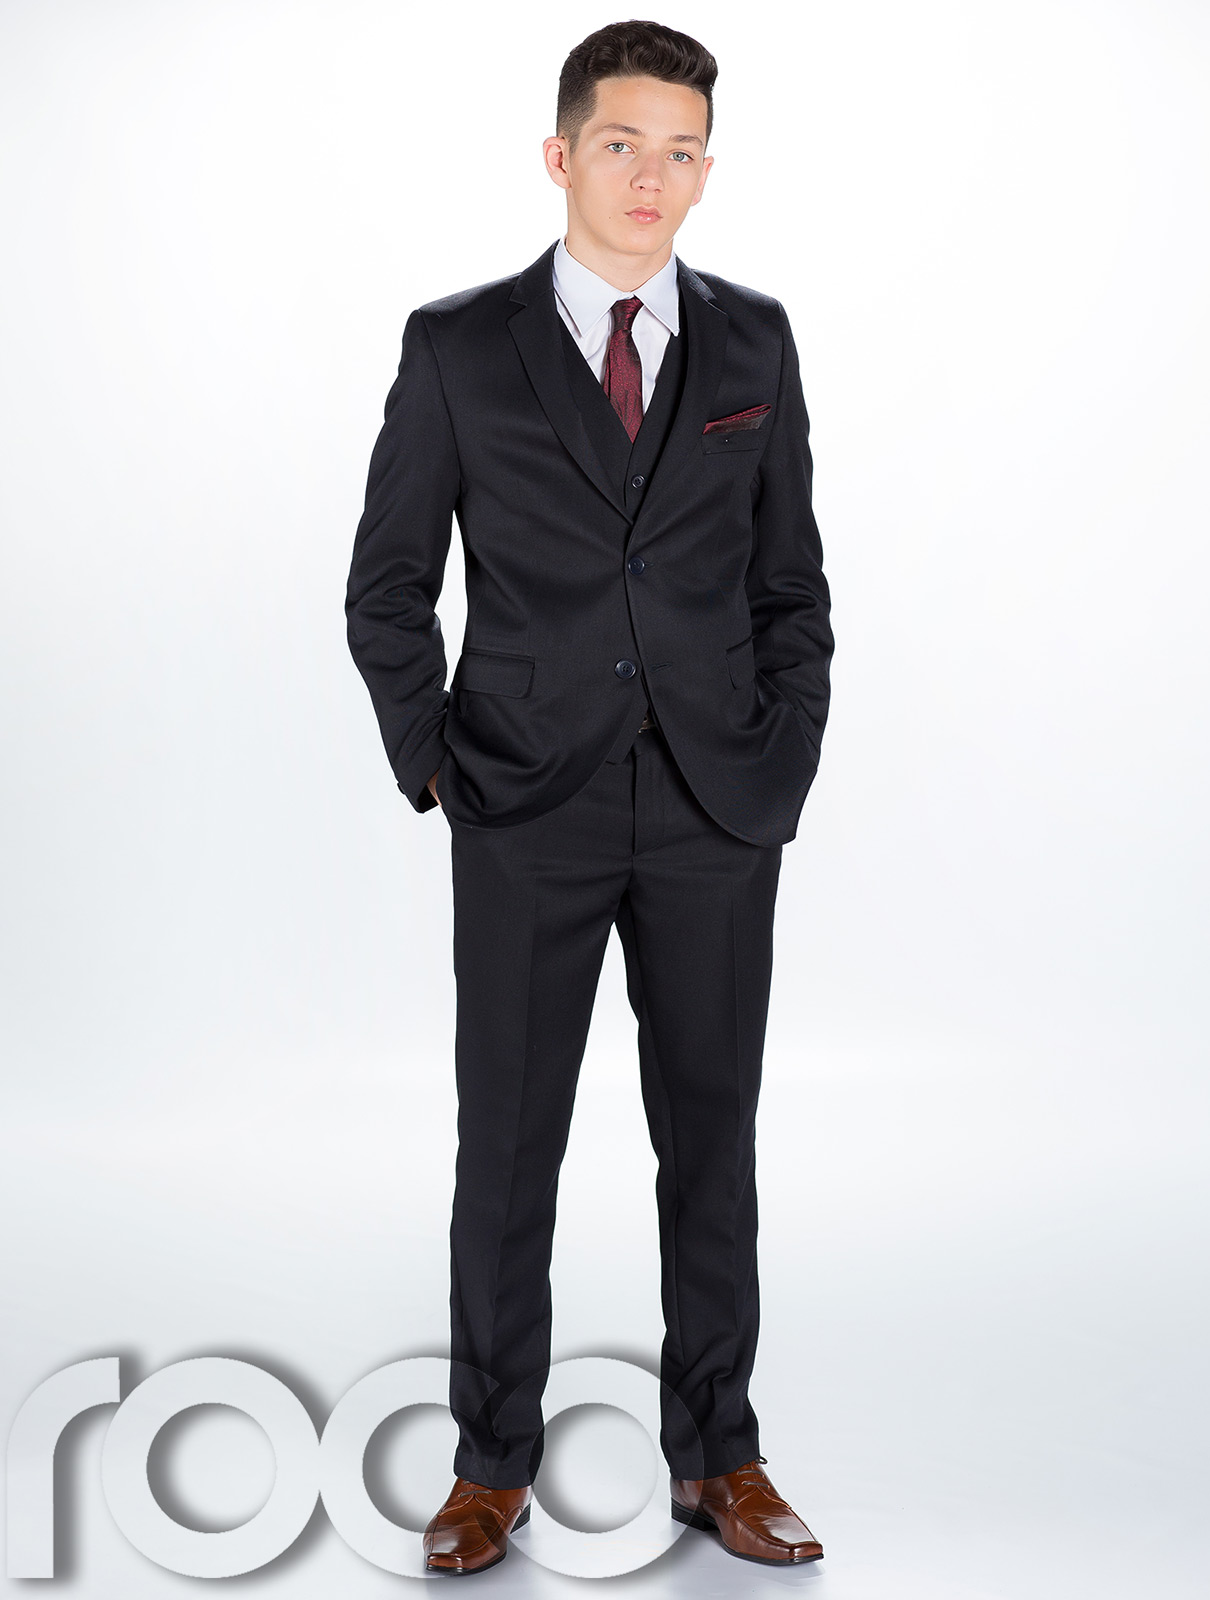 Boys' suits, dress shirts and ties, and dress shoes to go with it all. And the best part is you won't break the bank putting together a special occasion look for him. From kids' pajamas to classic and trendy styles, Burlington has an incredible selection of kids' fashions at sensational prices, make Burlington your one .